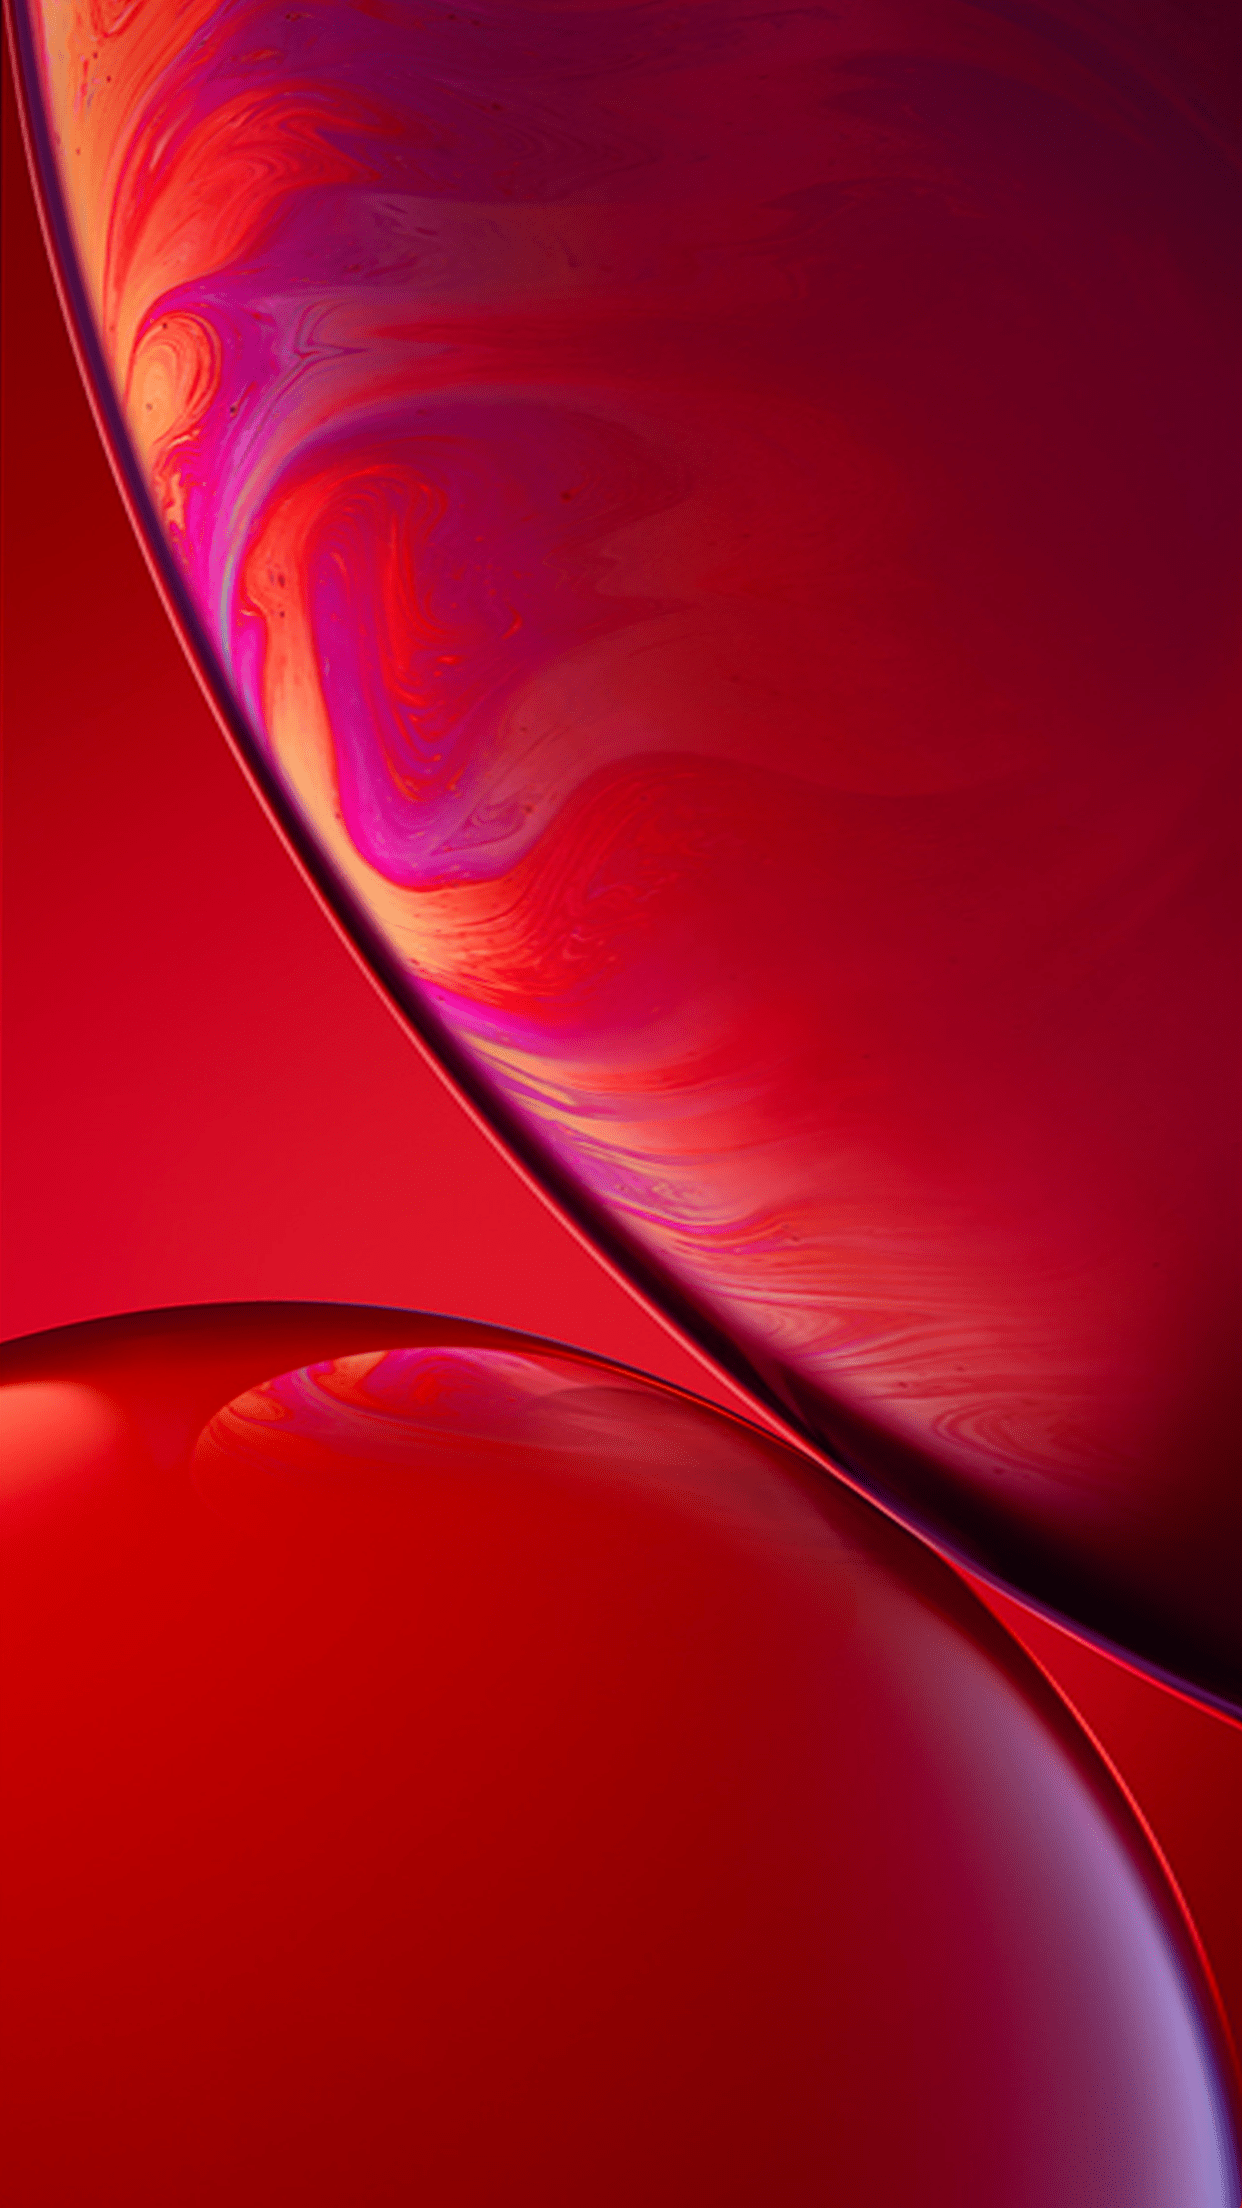 Iphone Xr Red Wallpapers Top Free Iphone Xr Red Backgrounds Wallpaperaccess